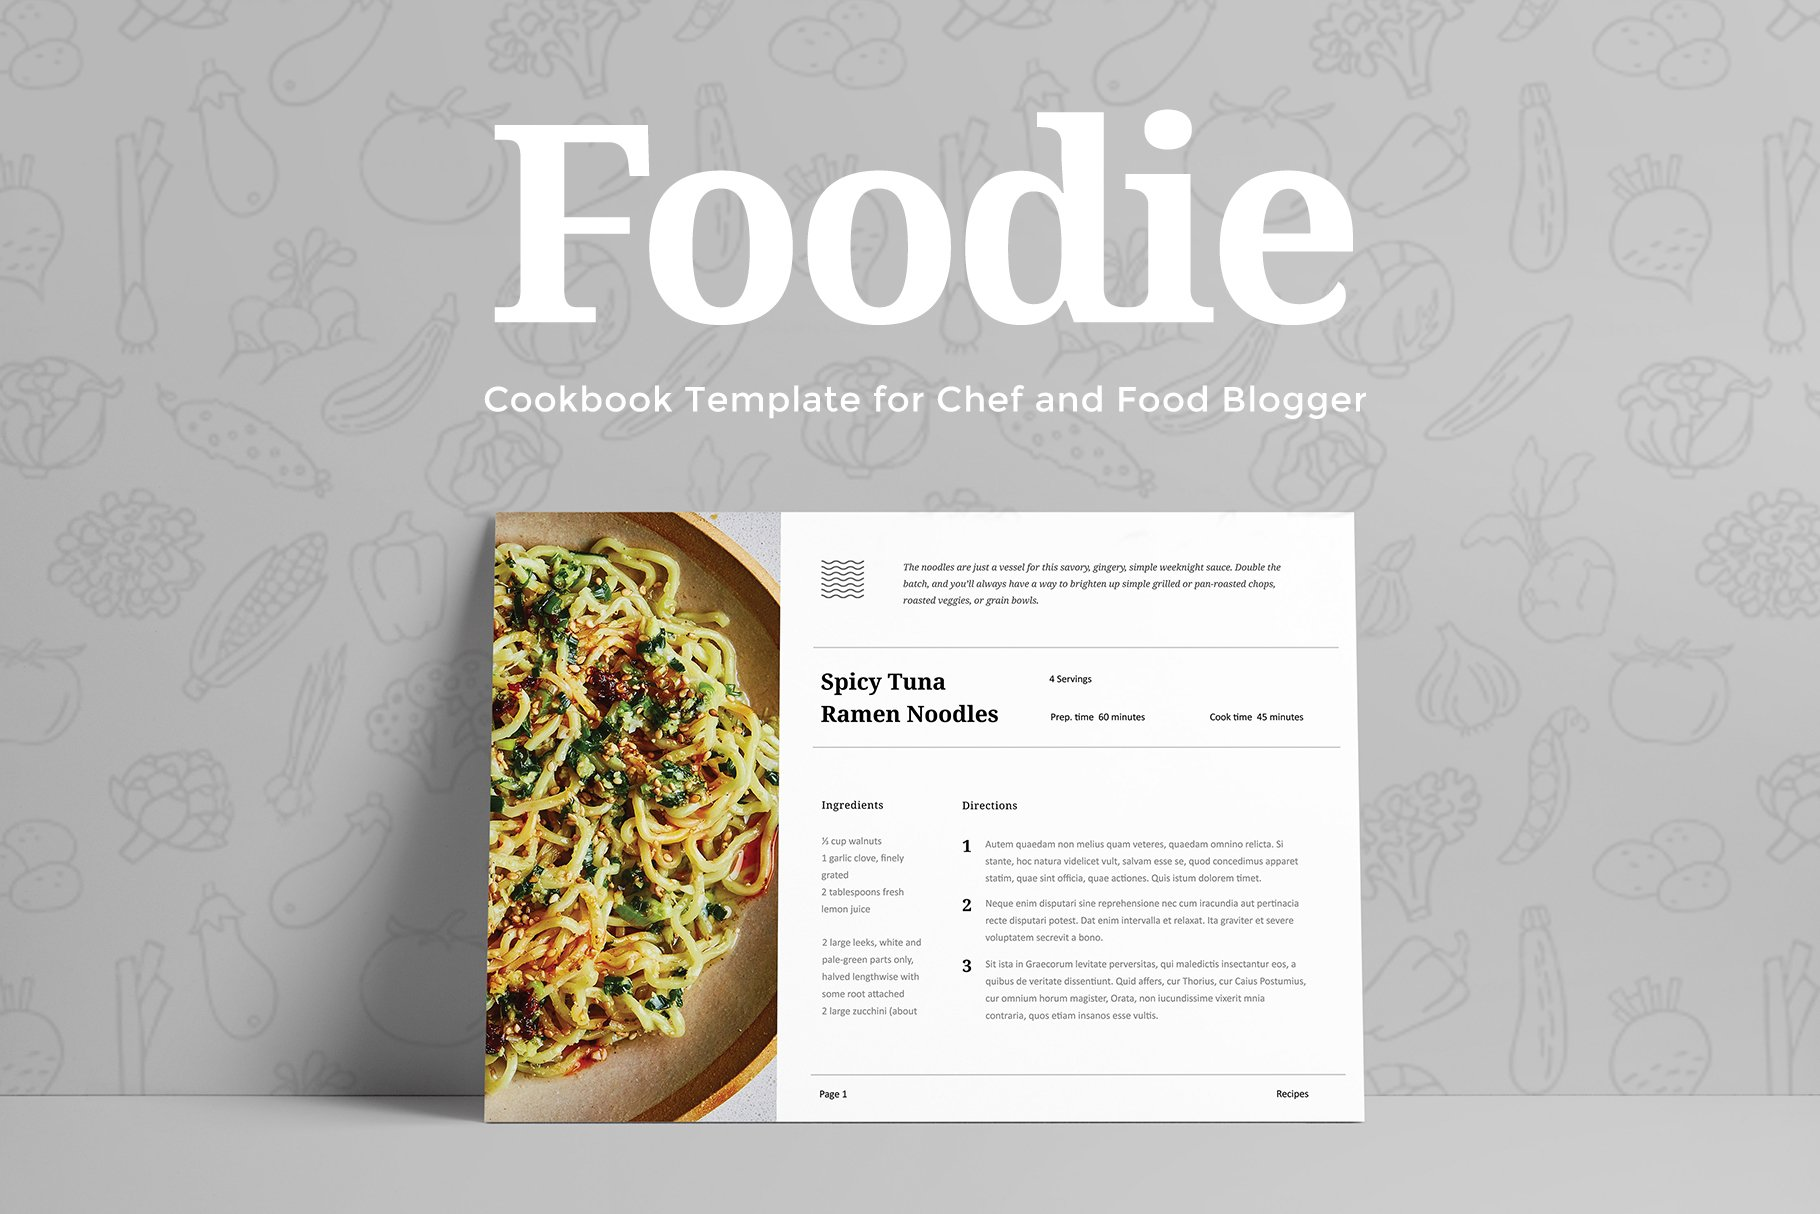 foodie cookbook template presentation templates creative market